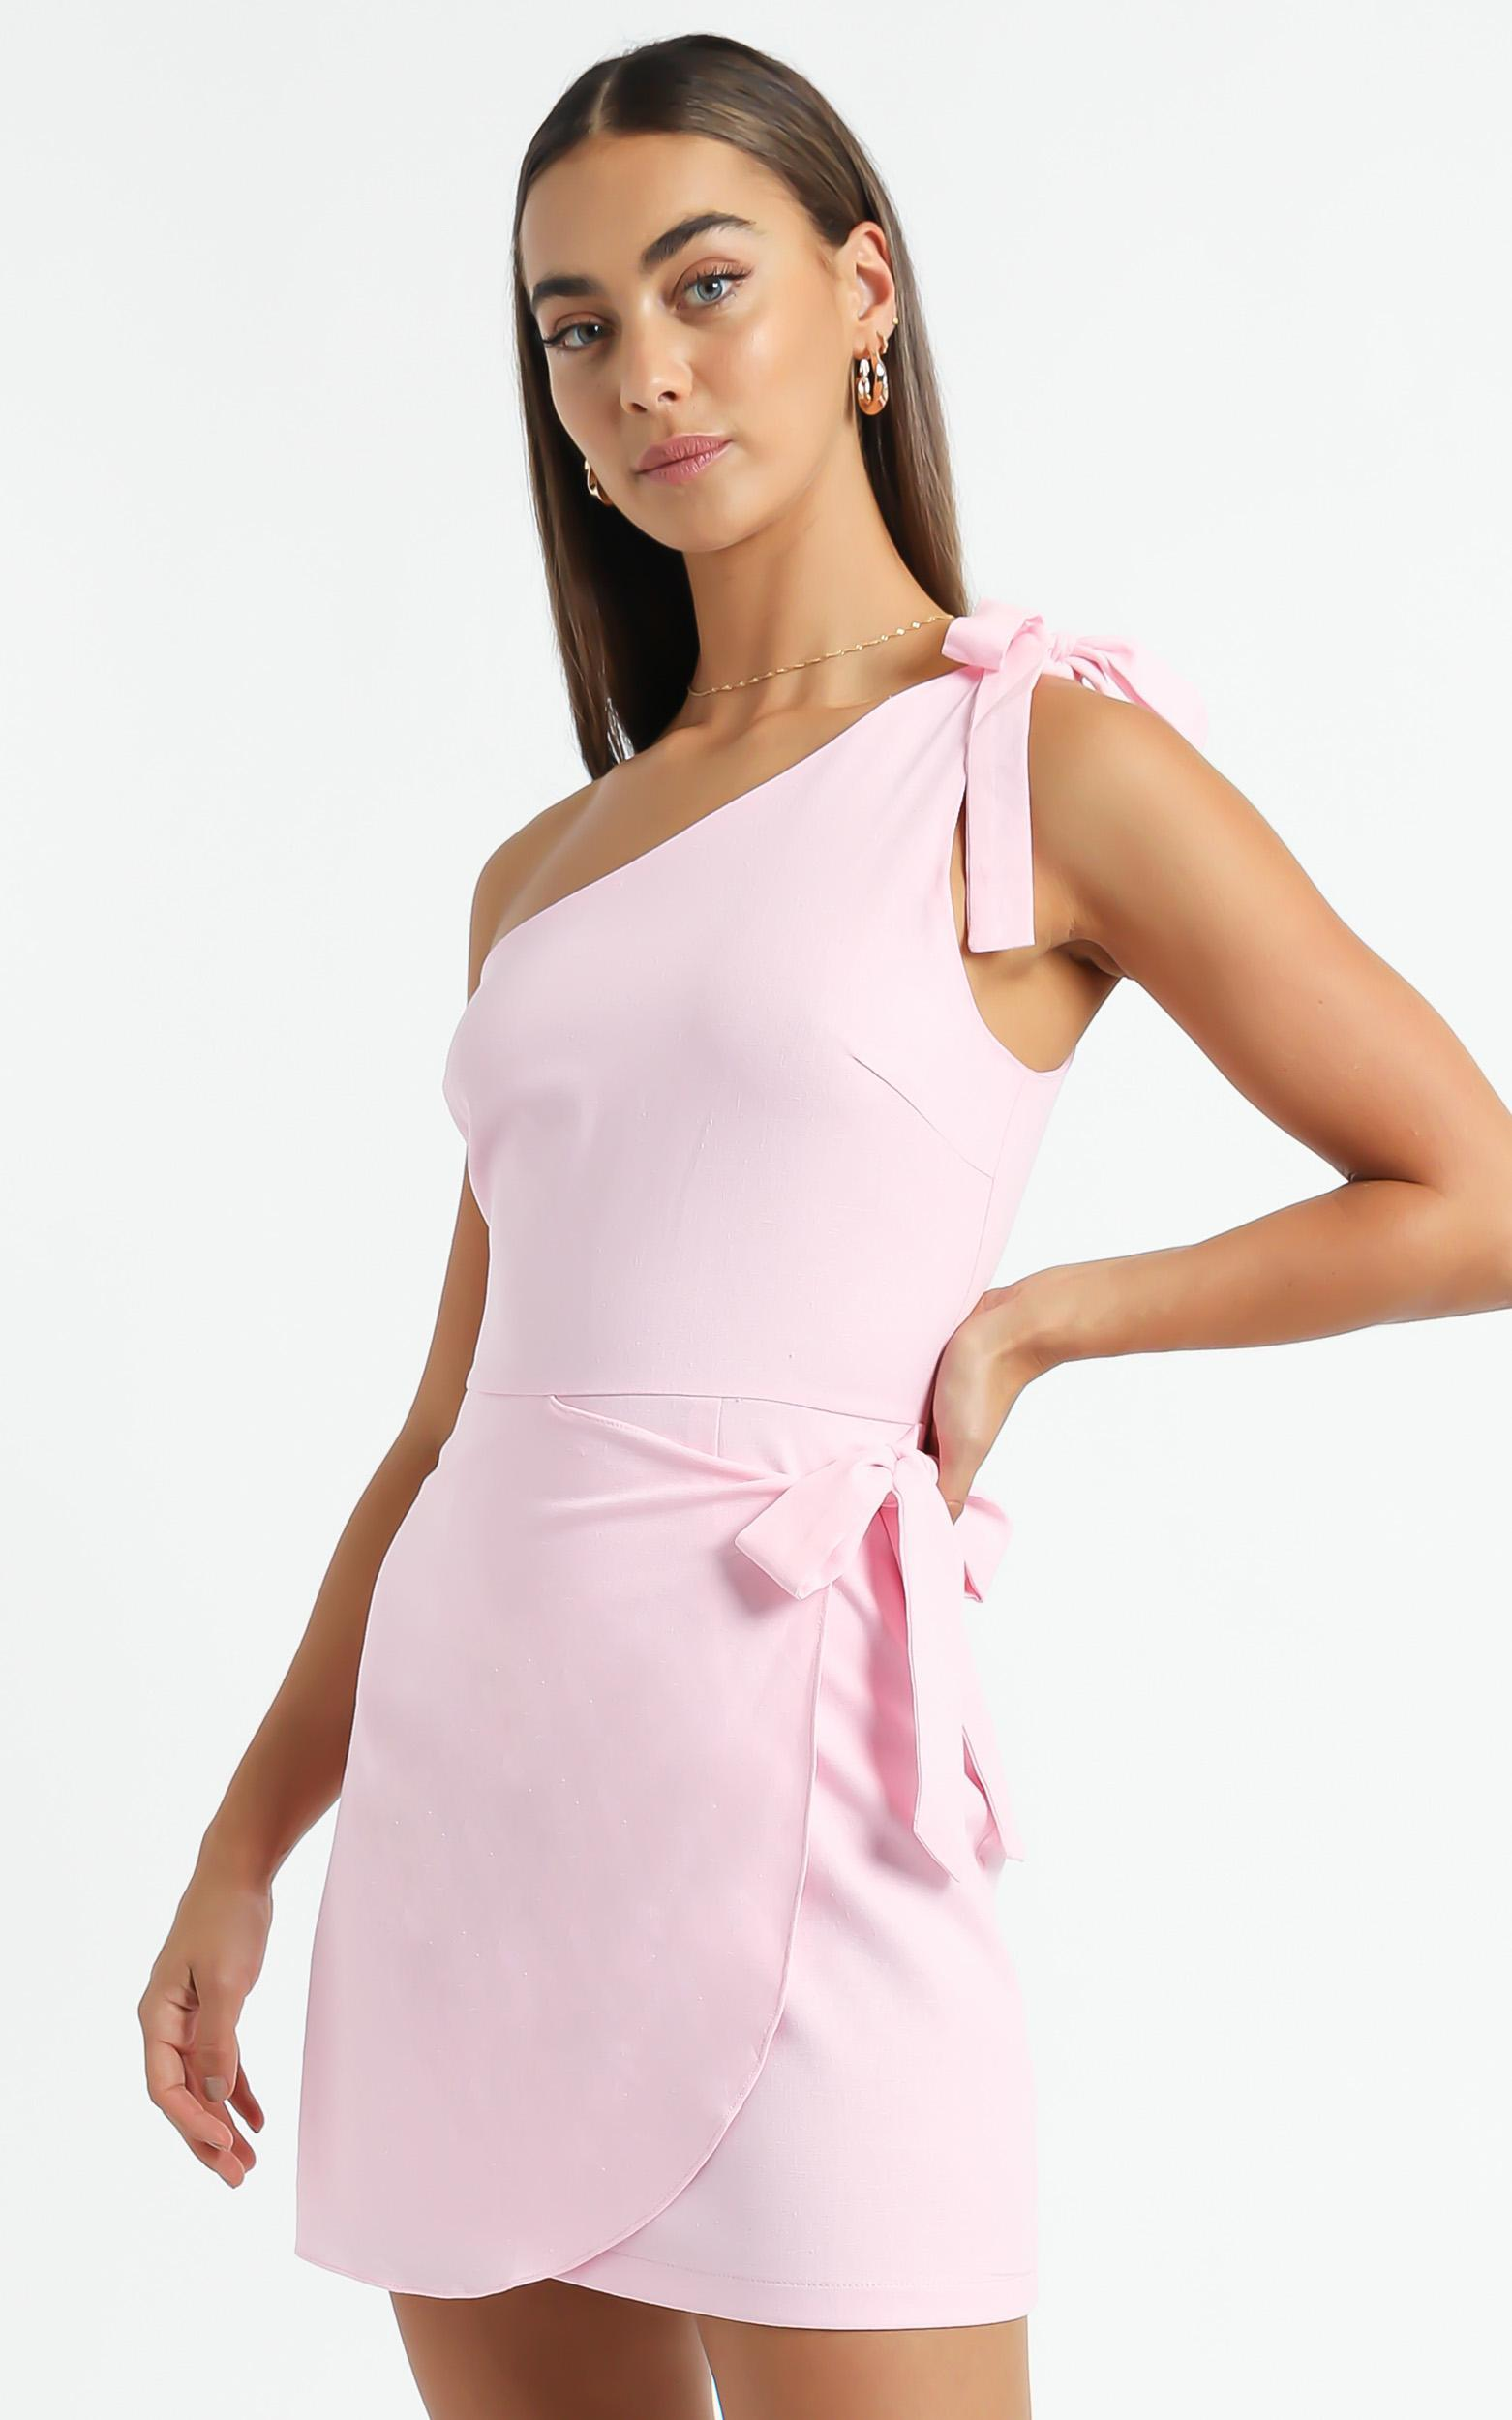 Keeping It Together Dress in Pink Linen Look - 06, PNK3, hi-res image number null